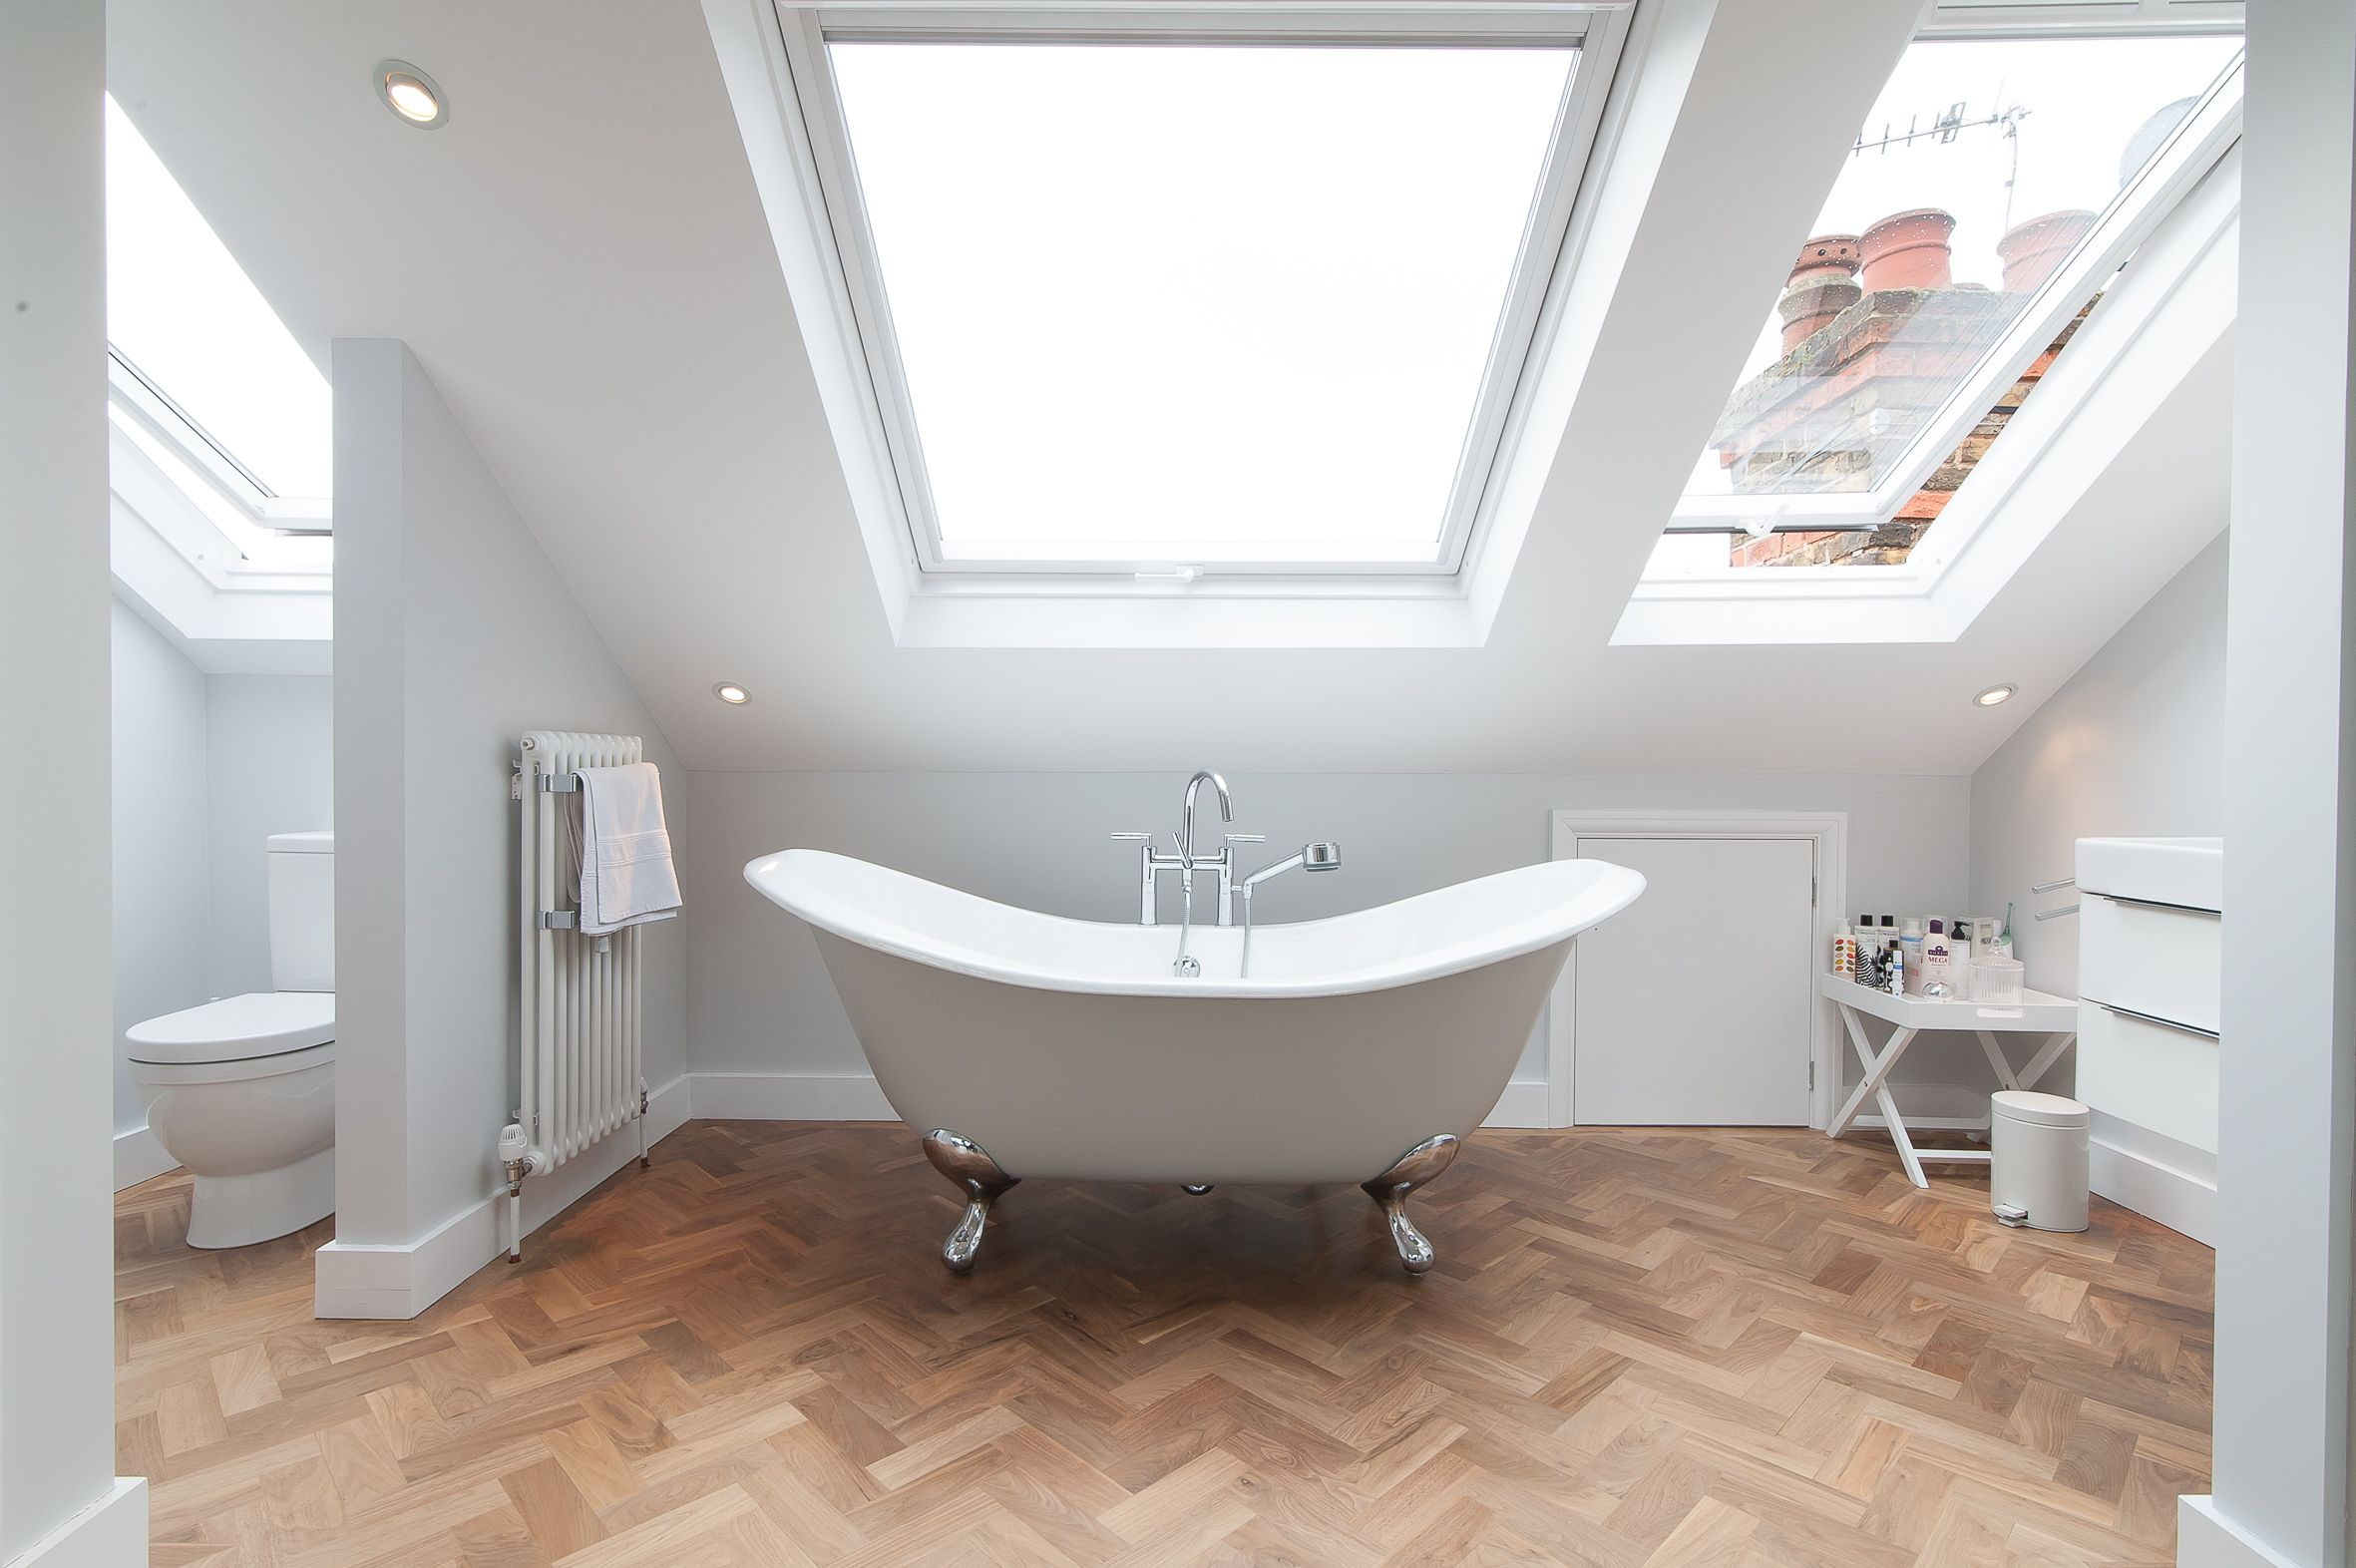 21 beautiful bathroom attic design ideas pictures dormer loft conversion west london and - Loft conversion bedroom design ideas ...